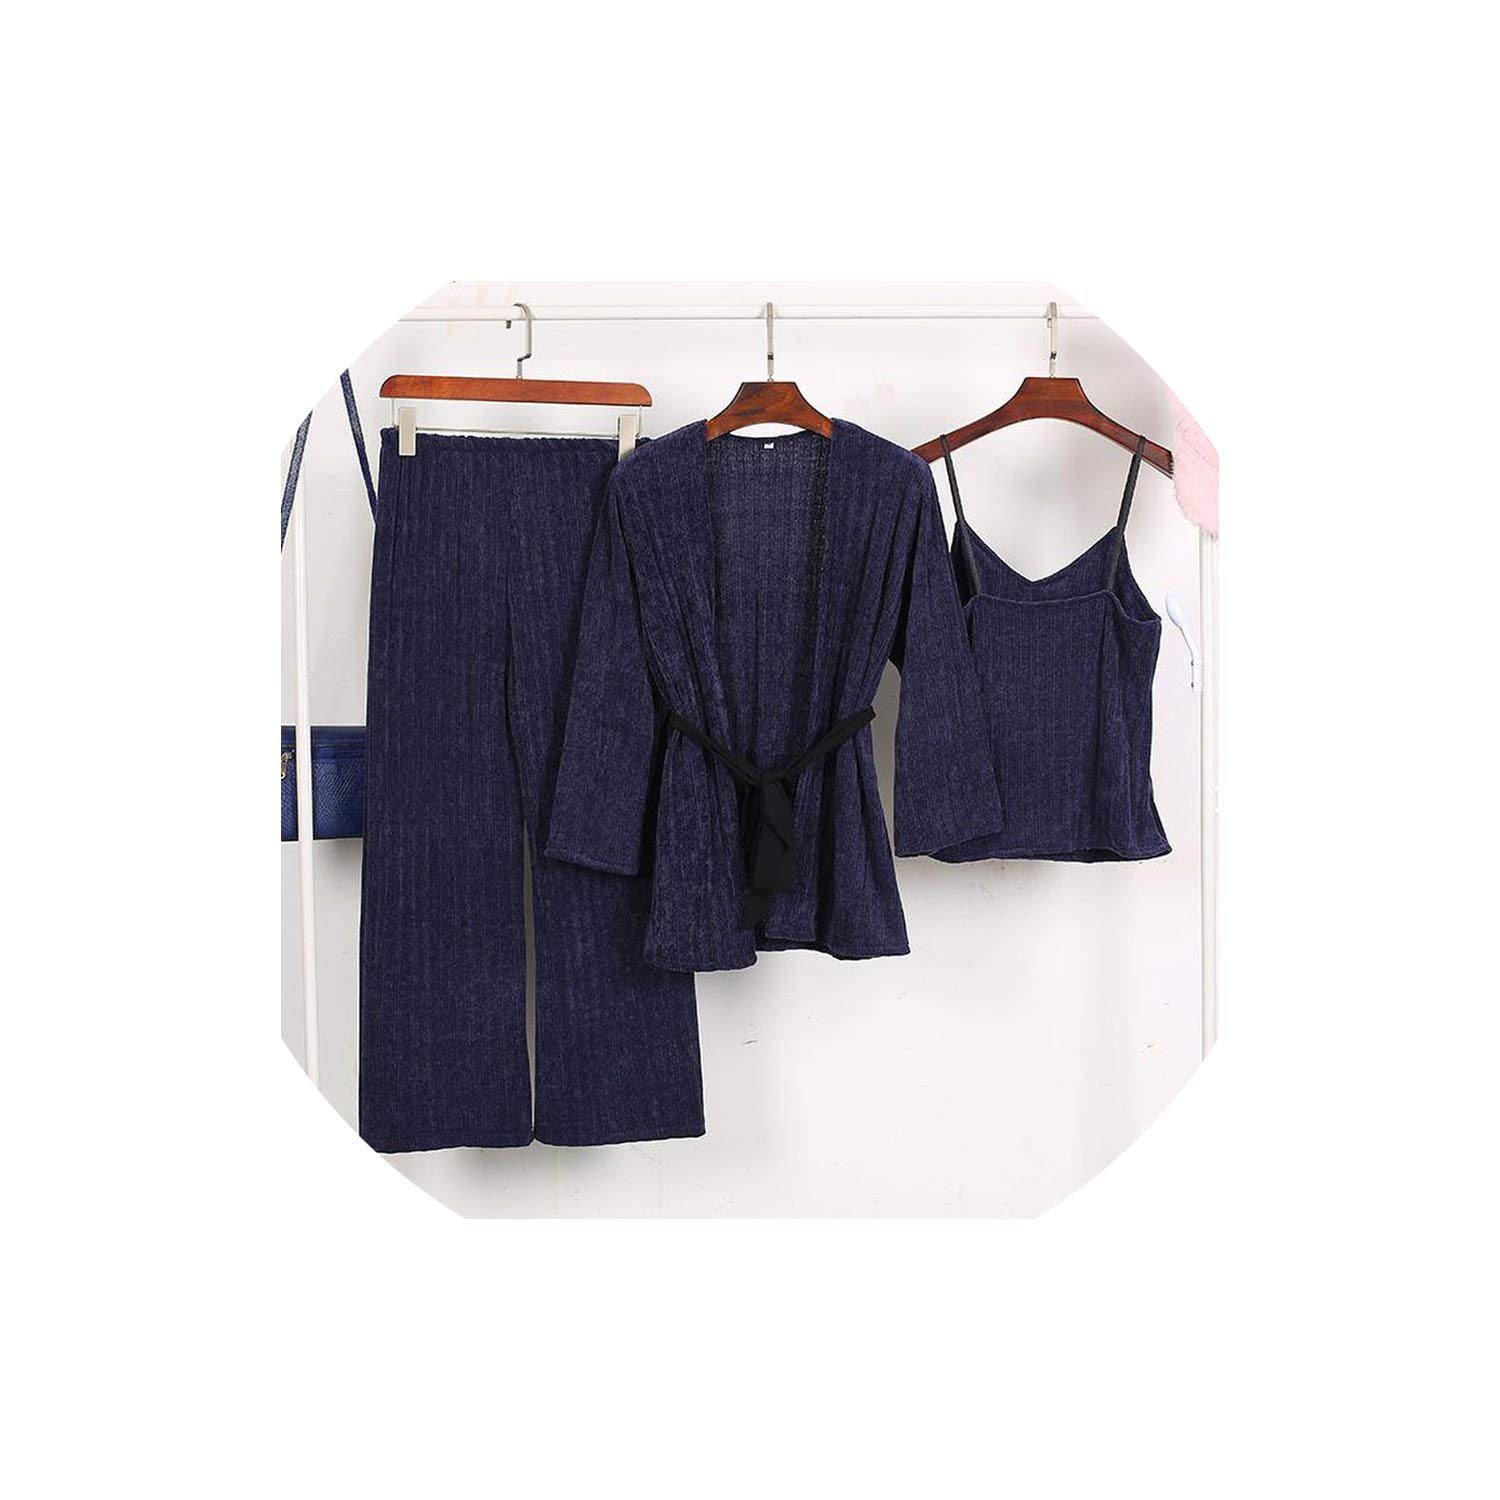 Navy bluee Winter Women Thicken Warm Sleepwear 3 Pieces Female Sexy Solid Long Sleeve Homewear Pajamas Suit